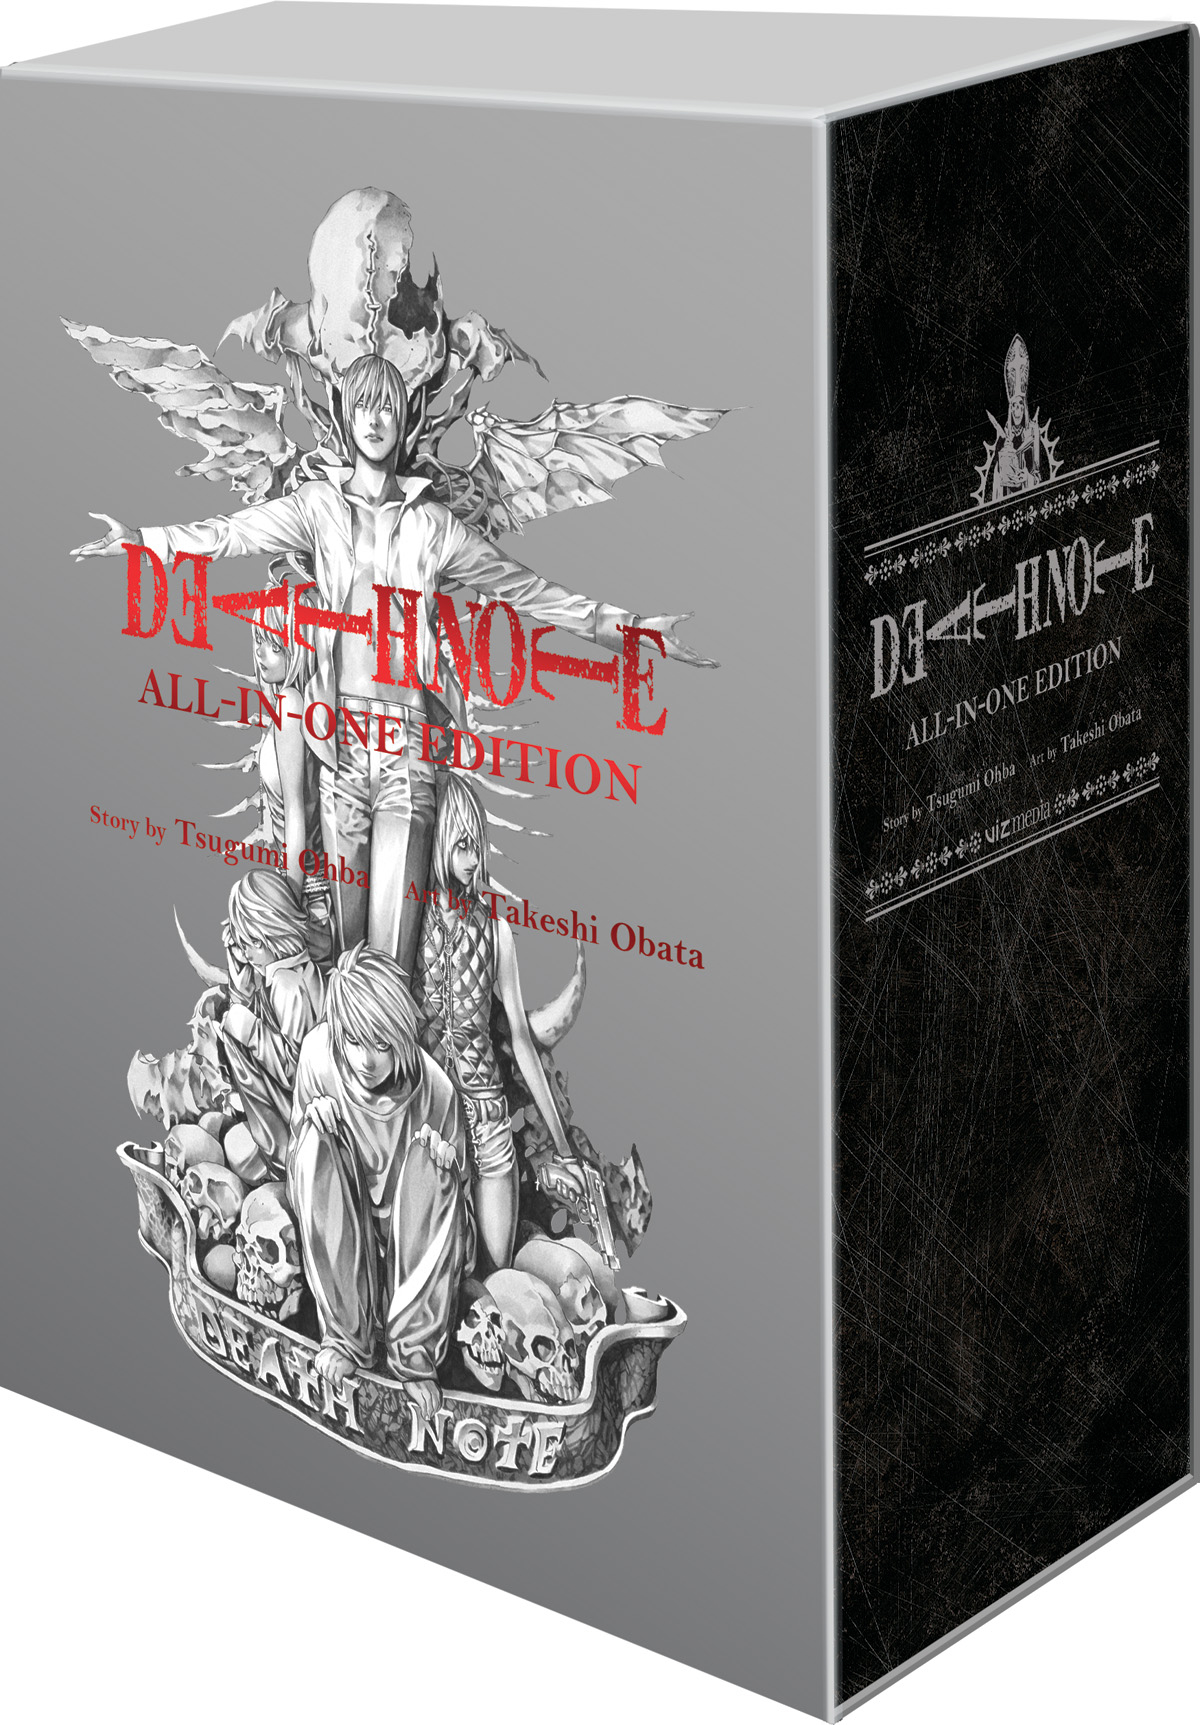 DEATH NOTE SLIPCASE GN ALL-IN-ONE EDITION